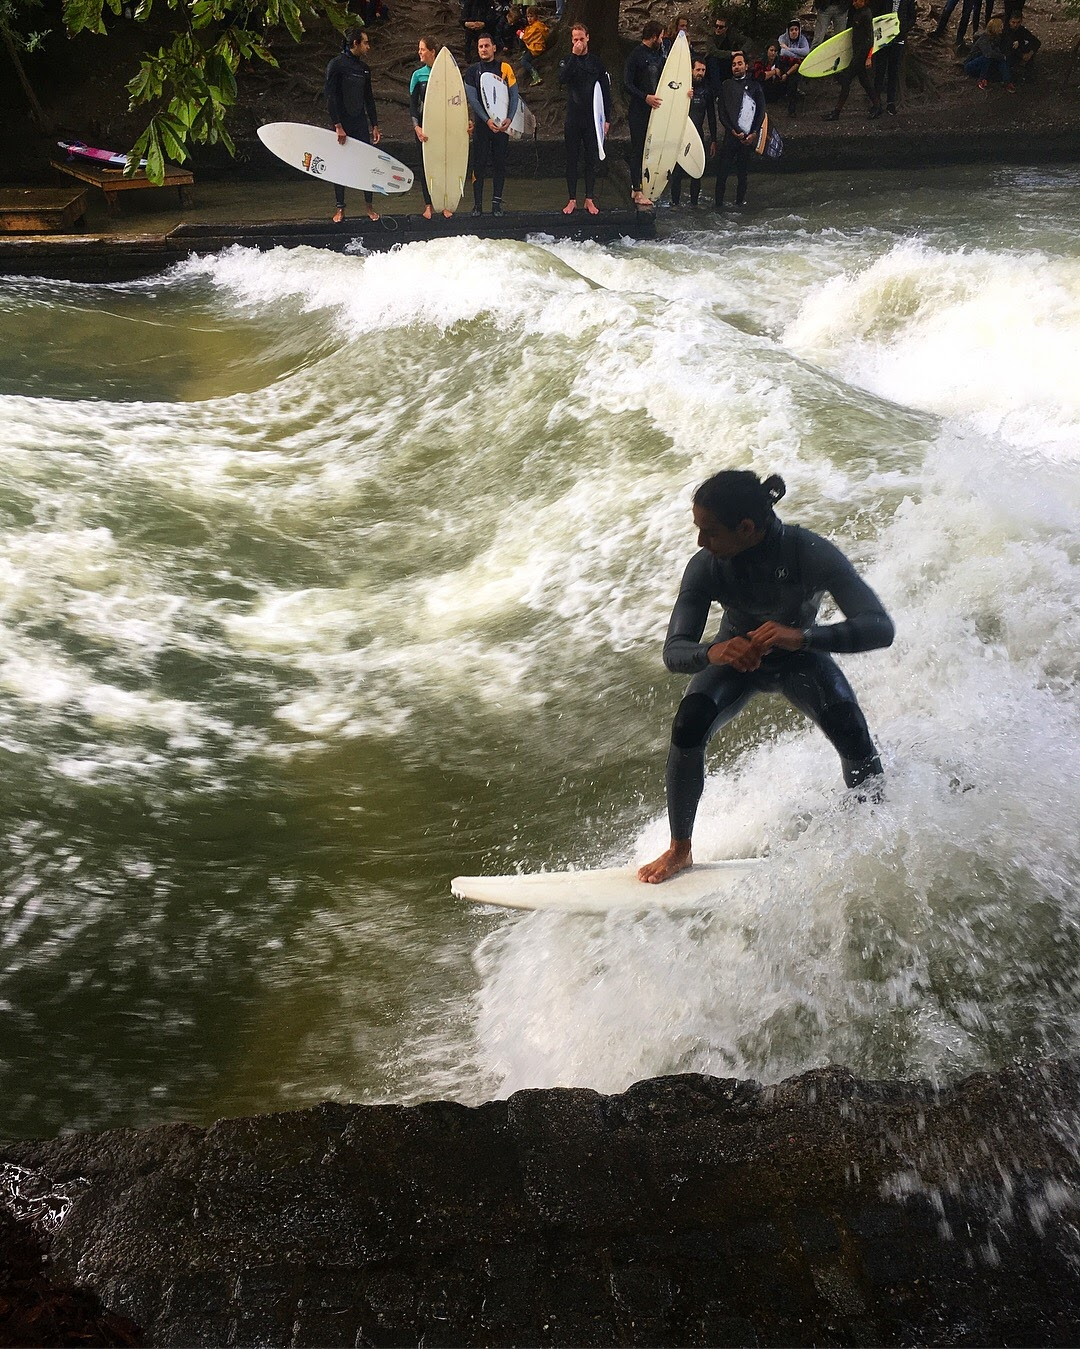 Surfing the Eisbach River